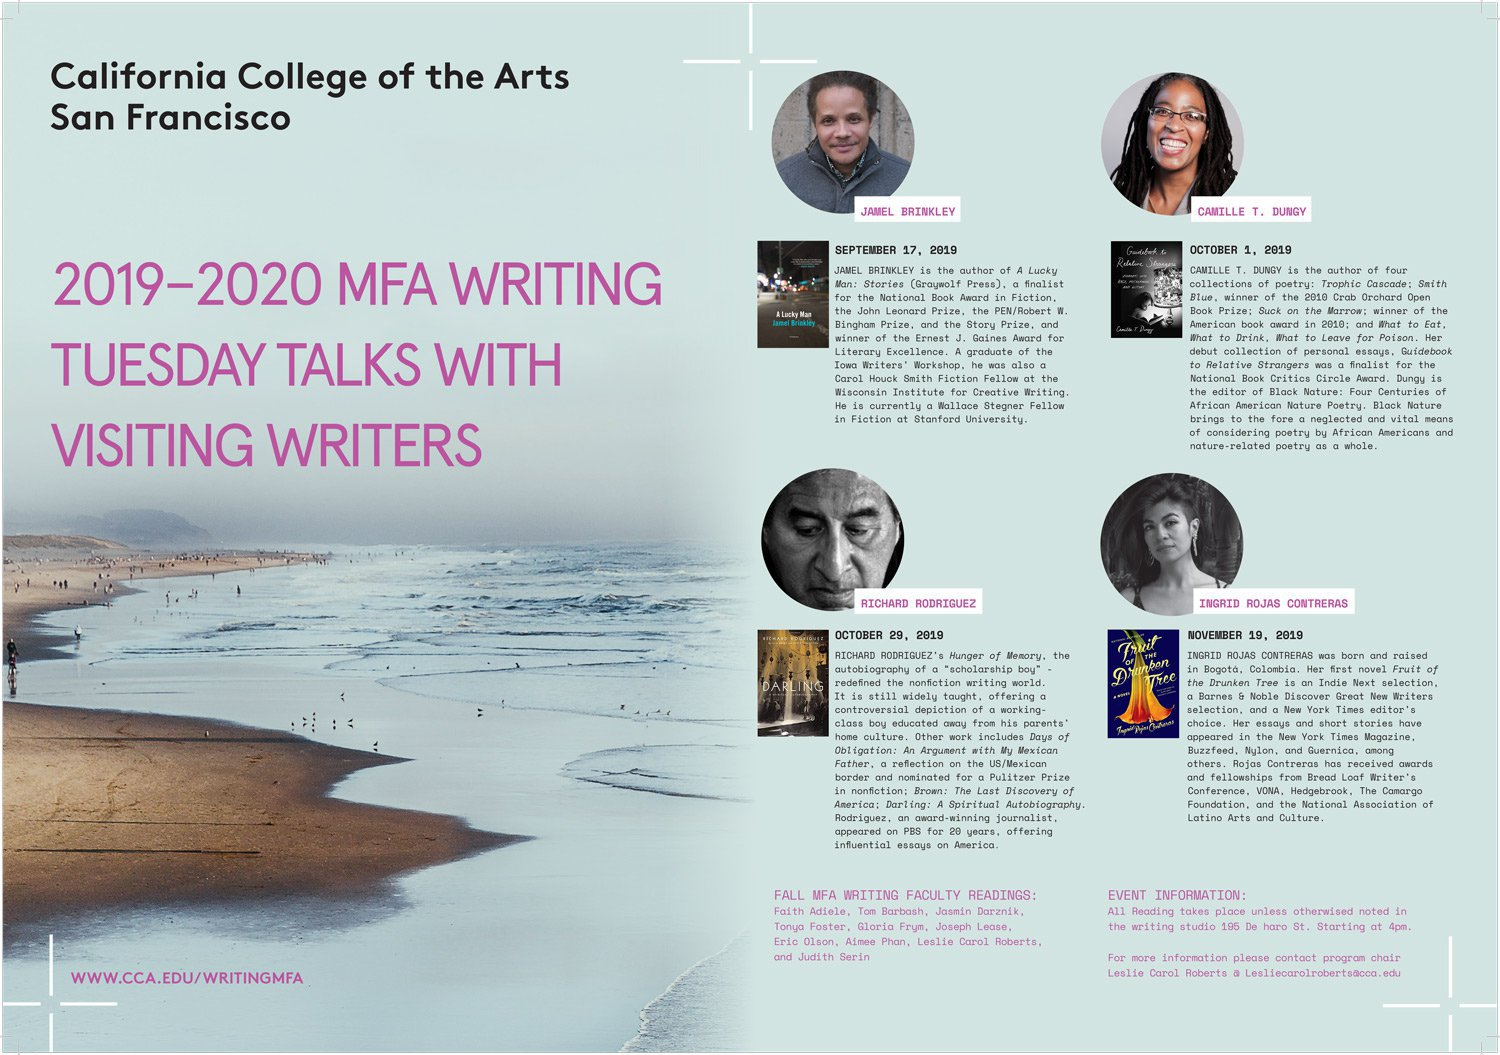 CCA 2019-2020 MFA Writing Tuesday Talks with Visiting Writers_2019_Events_NP